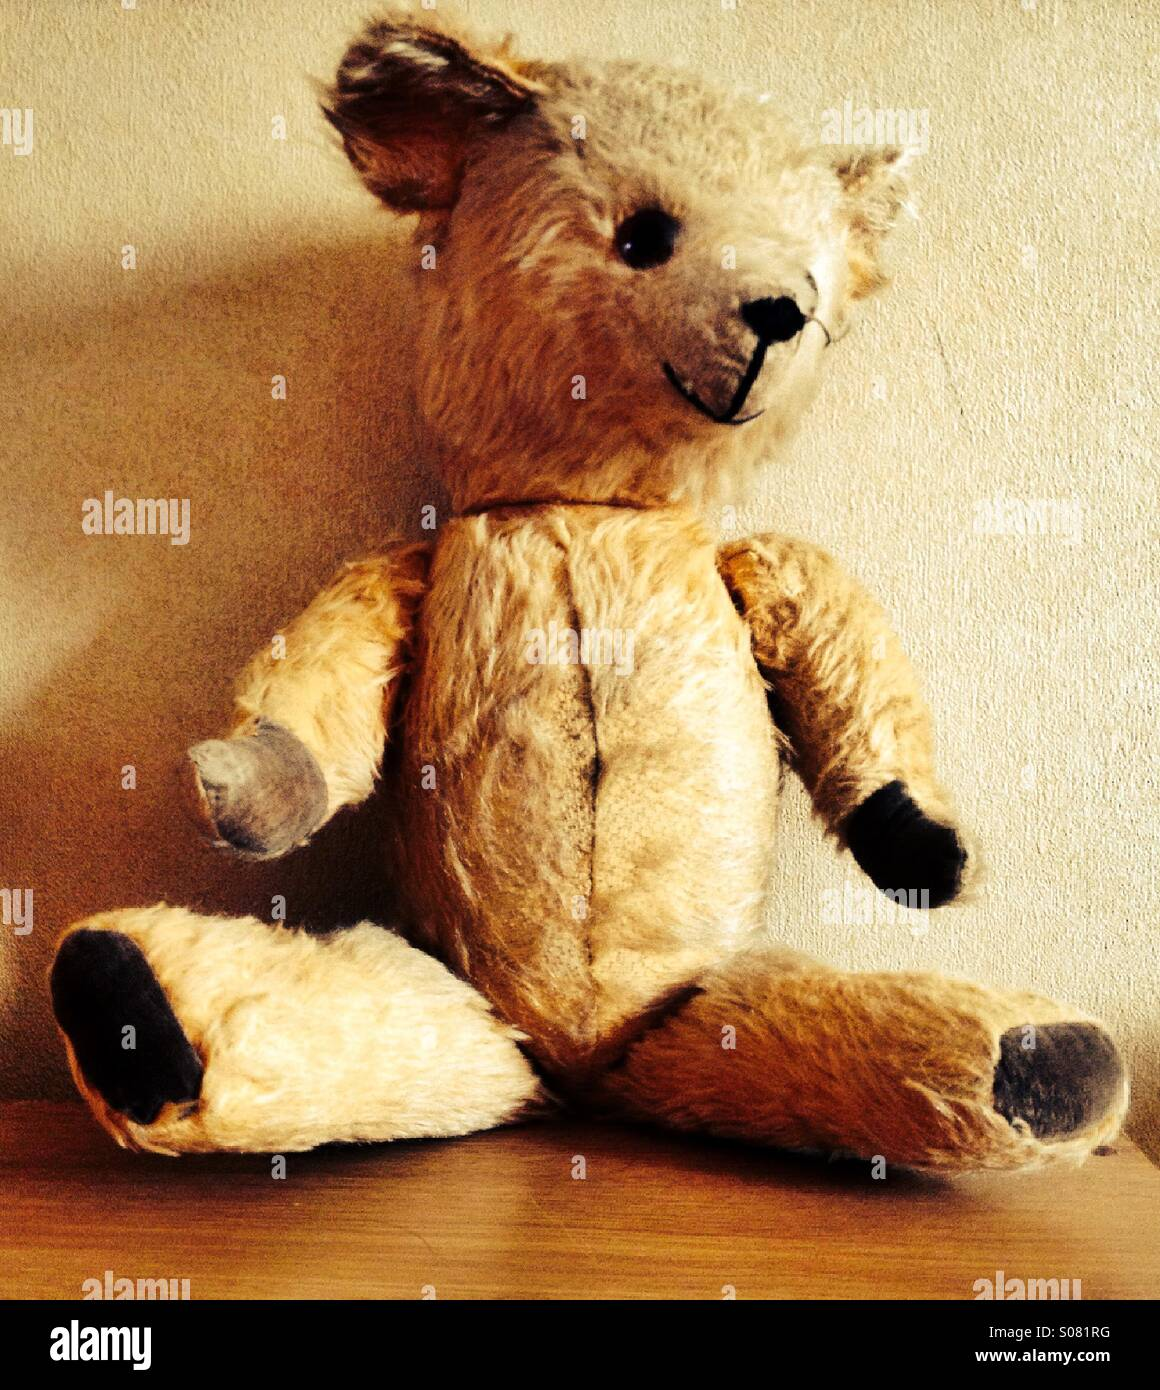 Old teddy bear - Stock Image